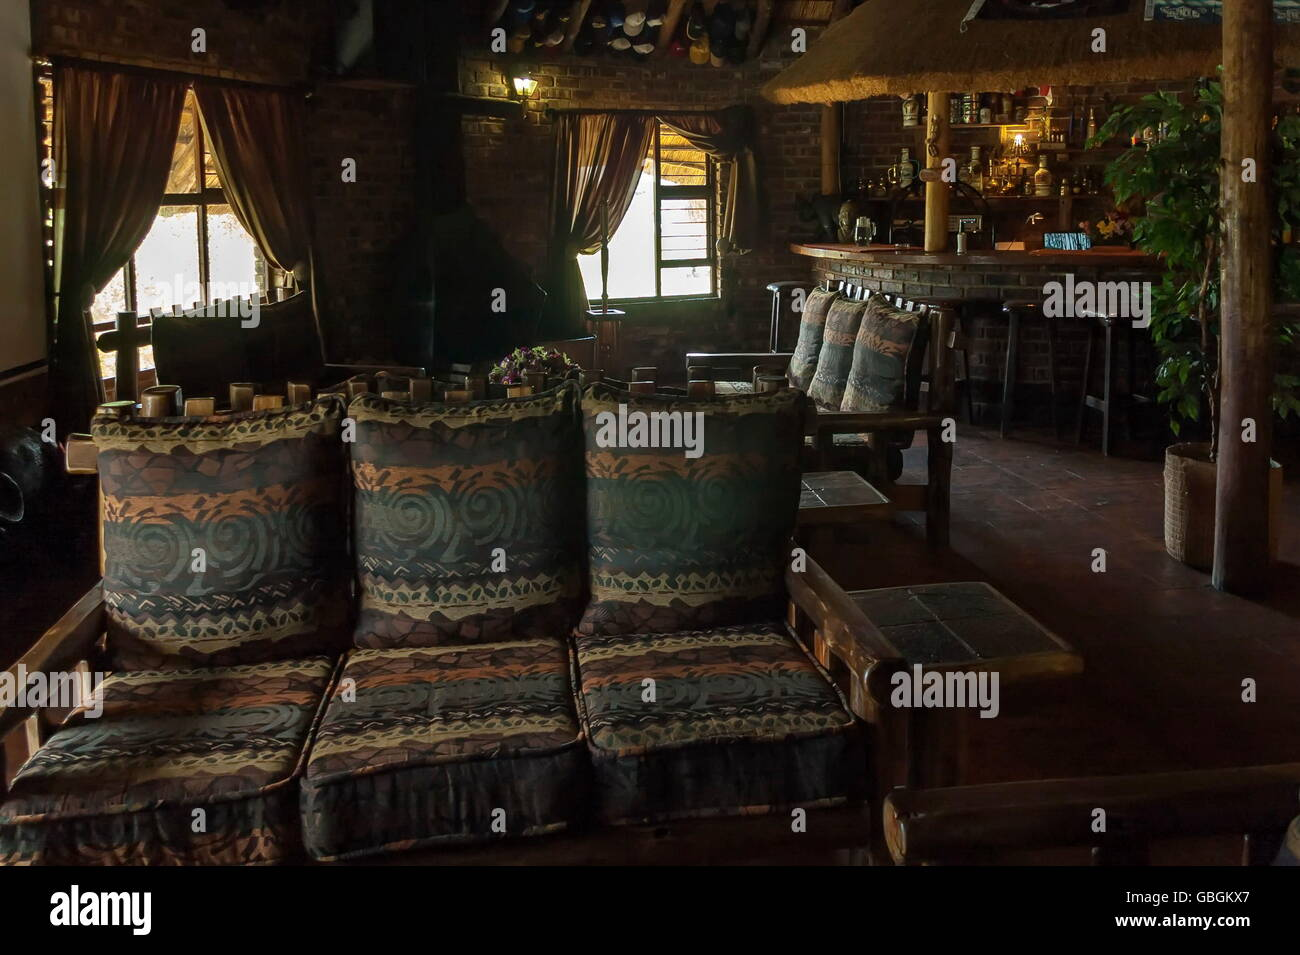 Indoors public place by guest house in South Africa - Stock Image